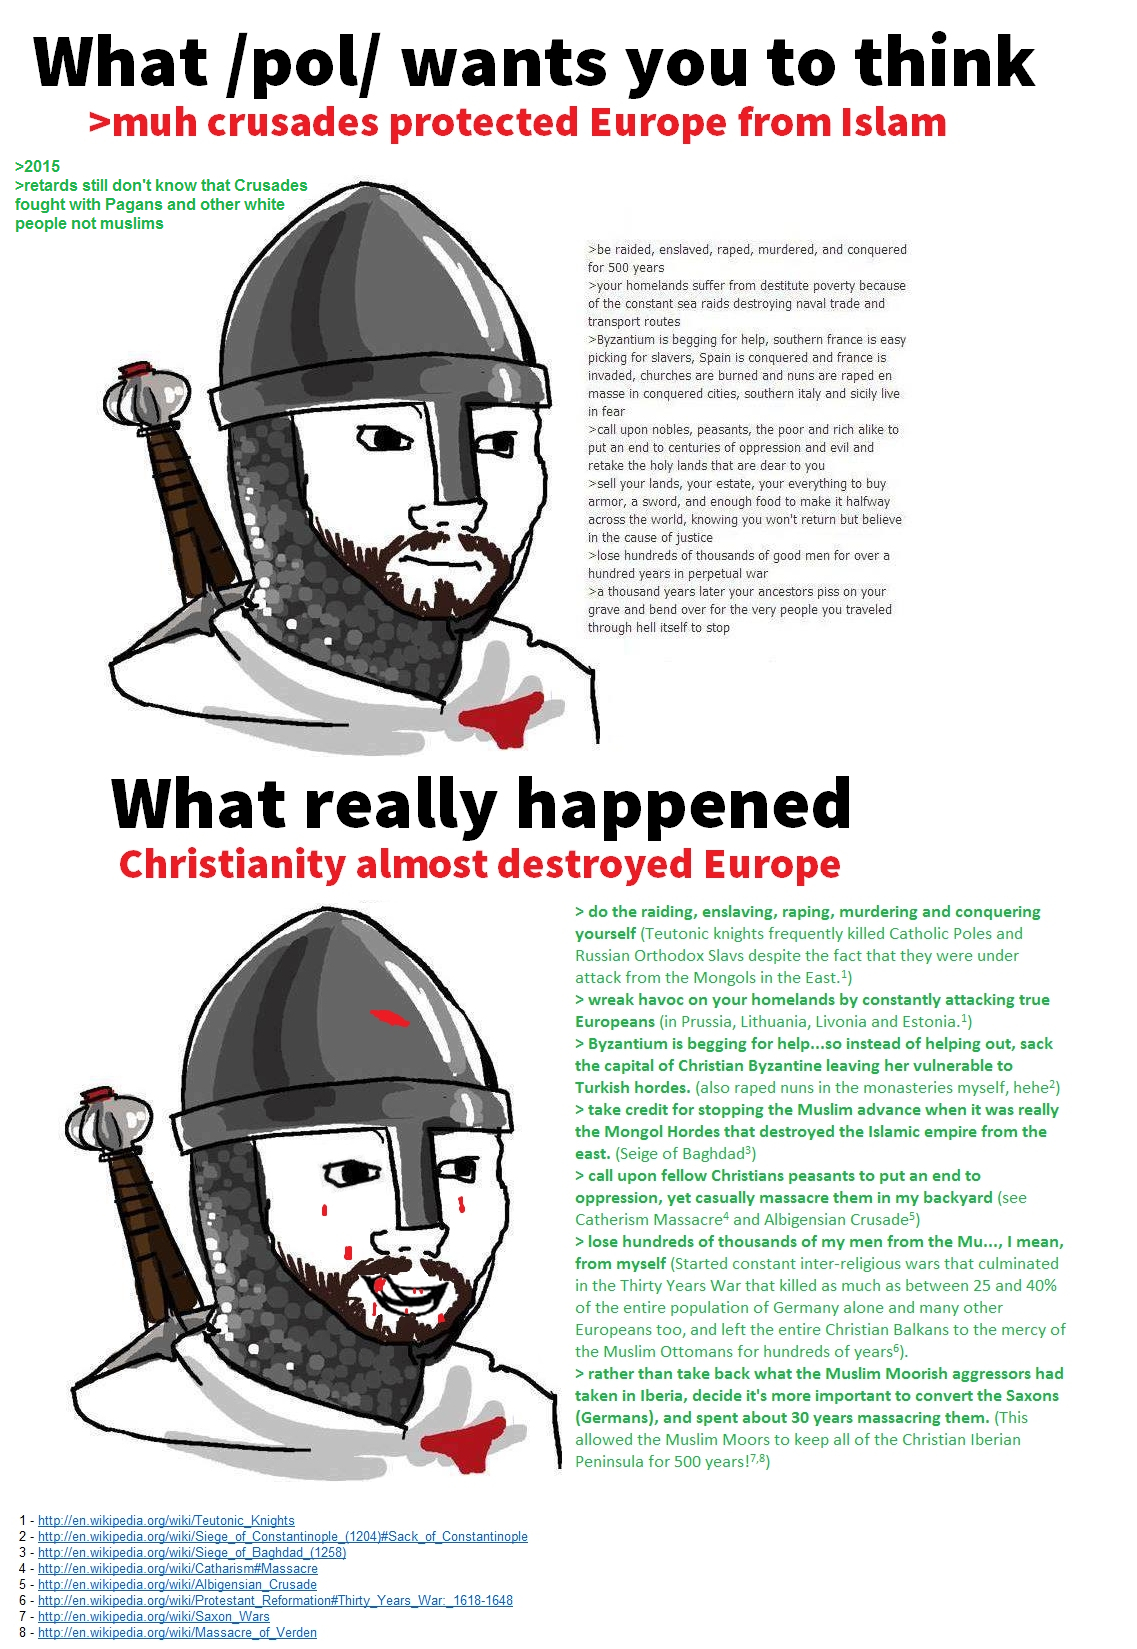 fc5 crusades according to pol pol know your meme